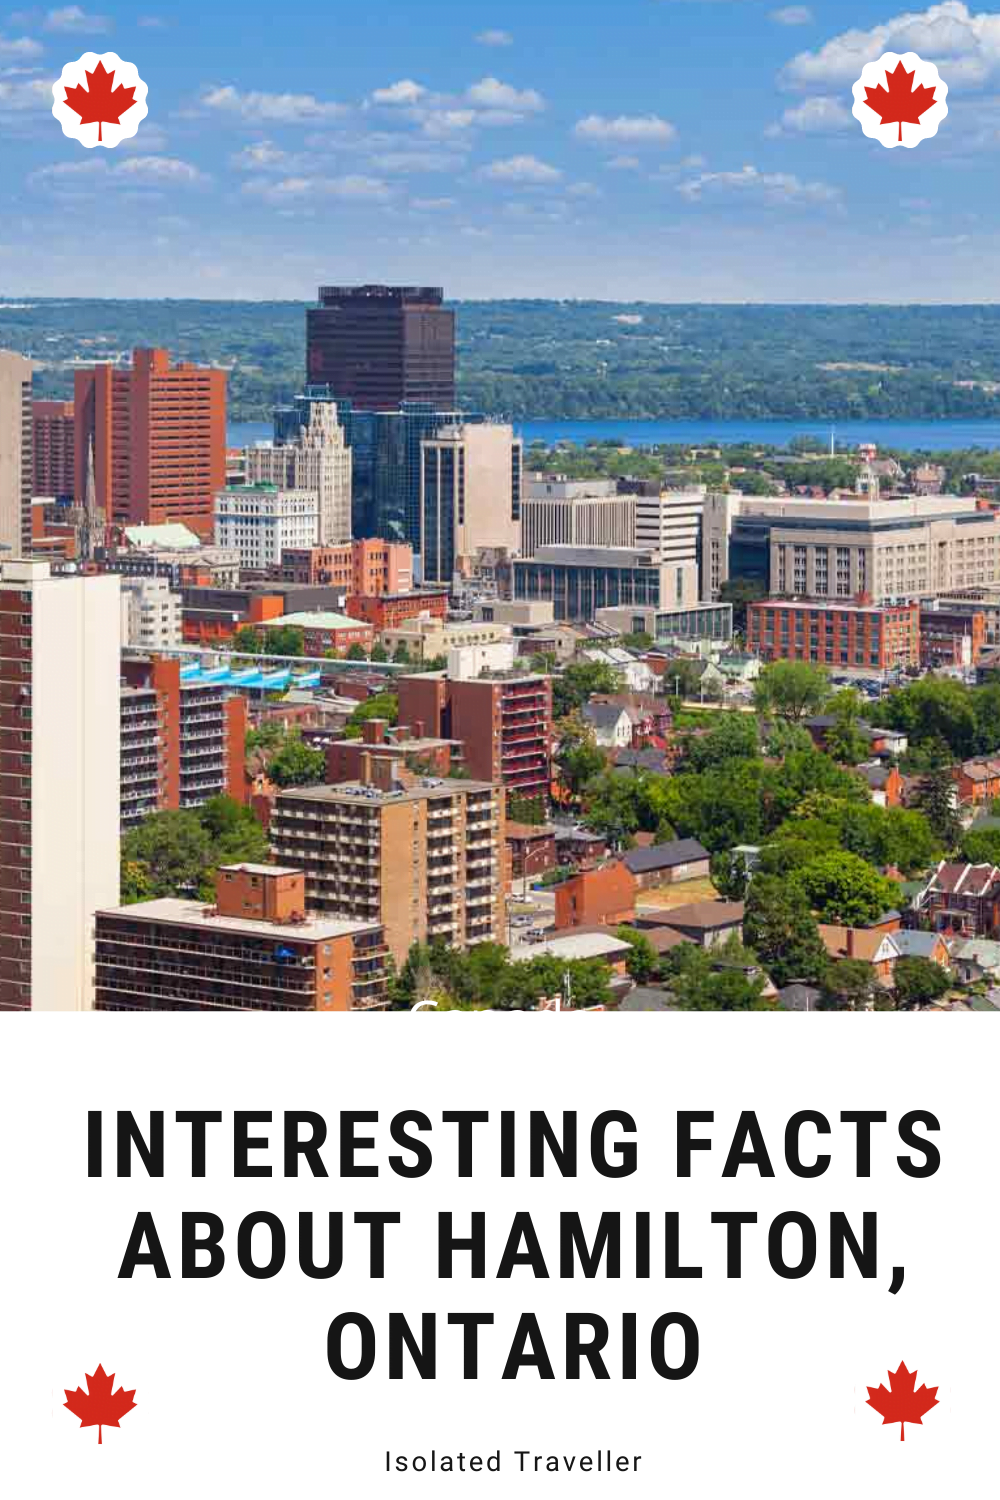 Facts About Hamilton